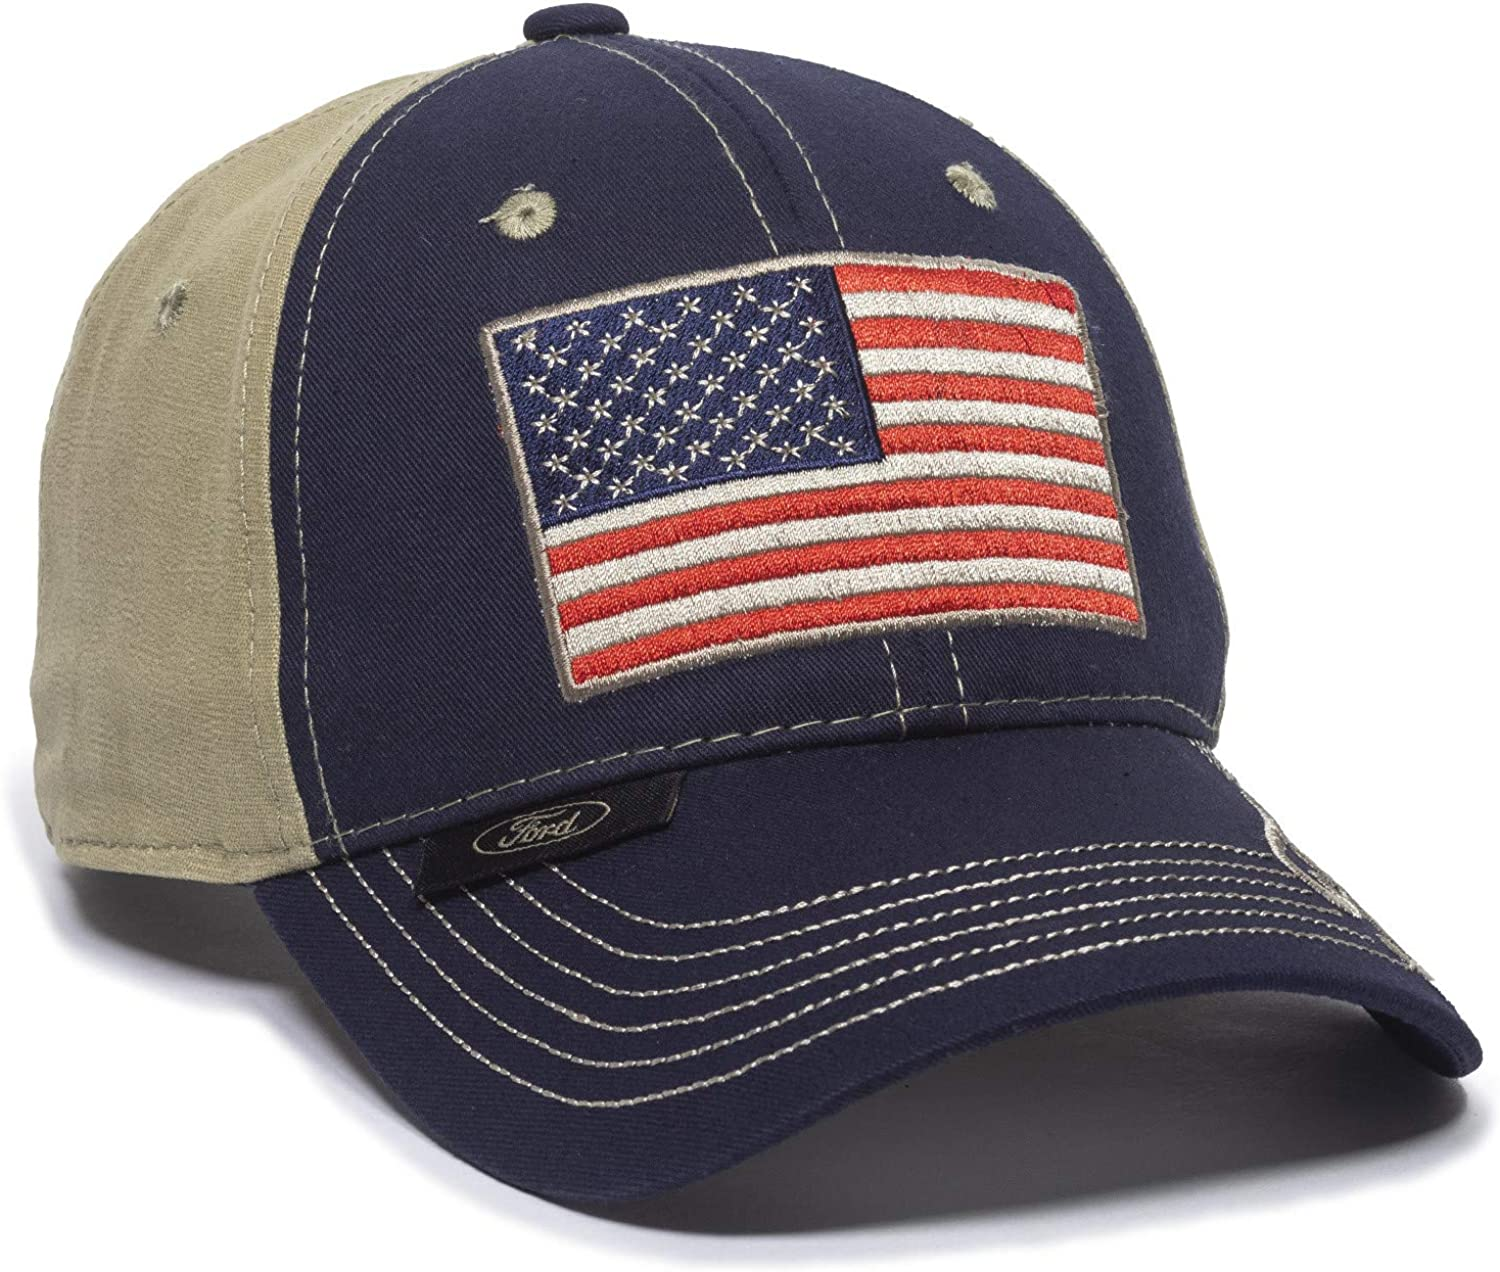 Outdoor Cap FRD10A, Navy/Khaki, One Size Fits Most